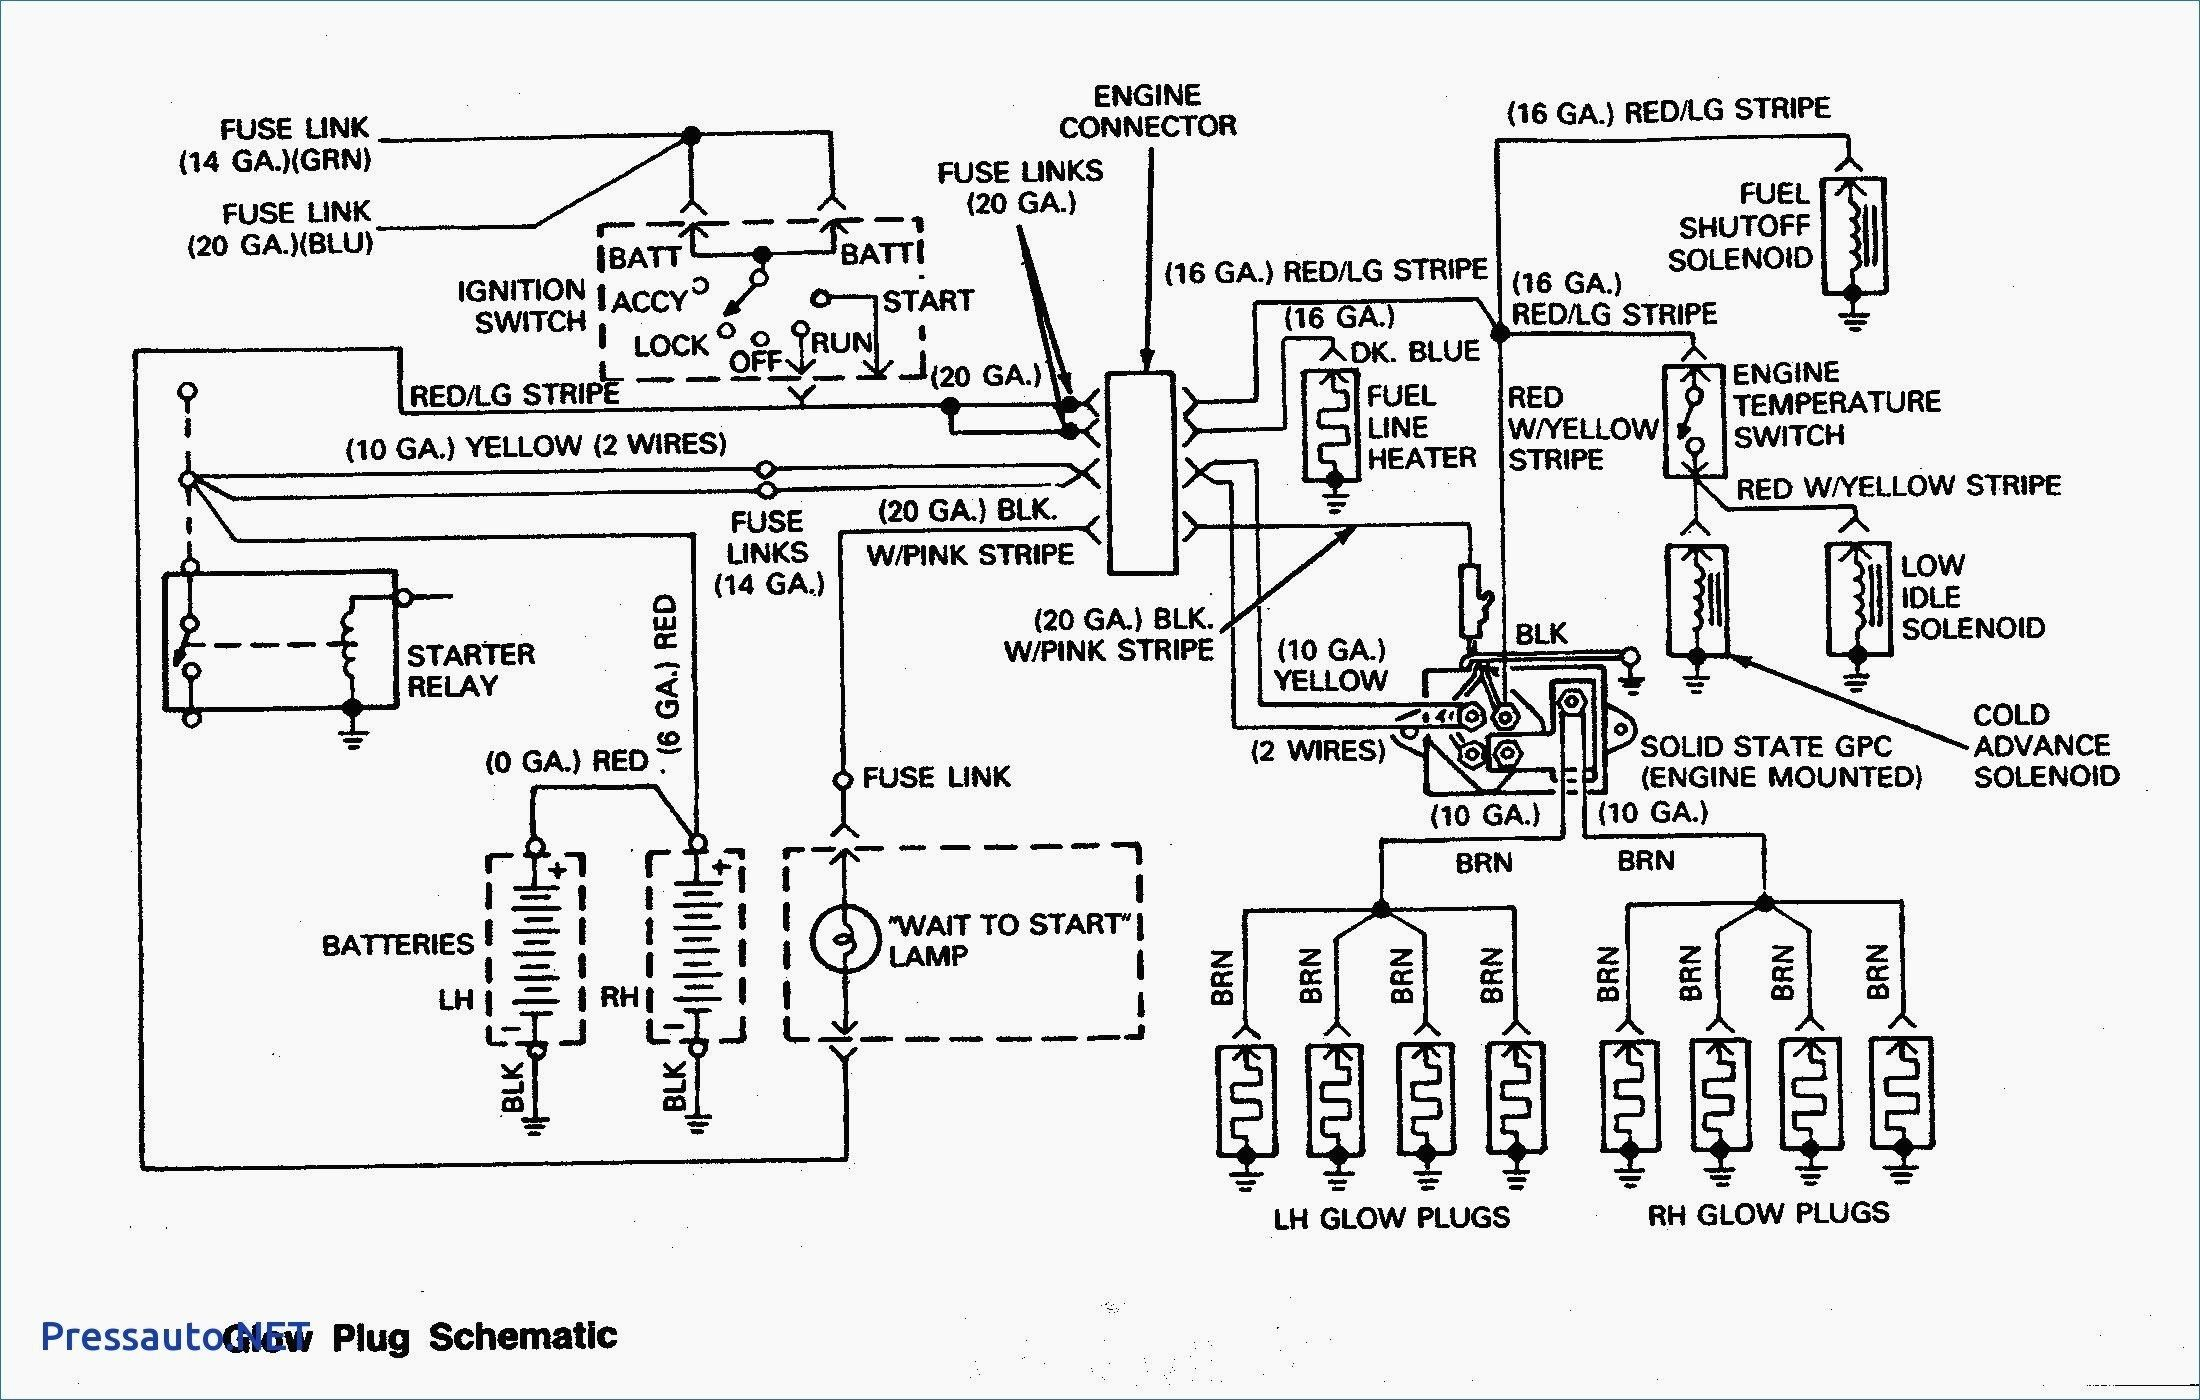 7 3 Idi Glow Plug Relay Wiring Diagram Archives Kobecityinfo Regarding 7 3 Idi Glow Plug Controller Wiring Diagram Engine Tune Powerstroke Diagram